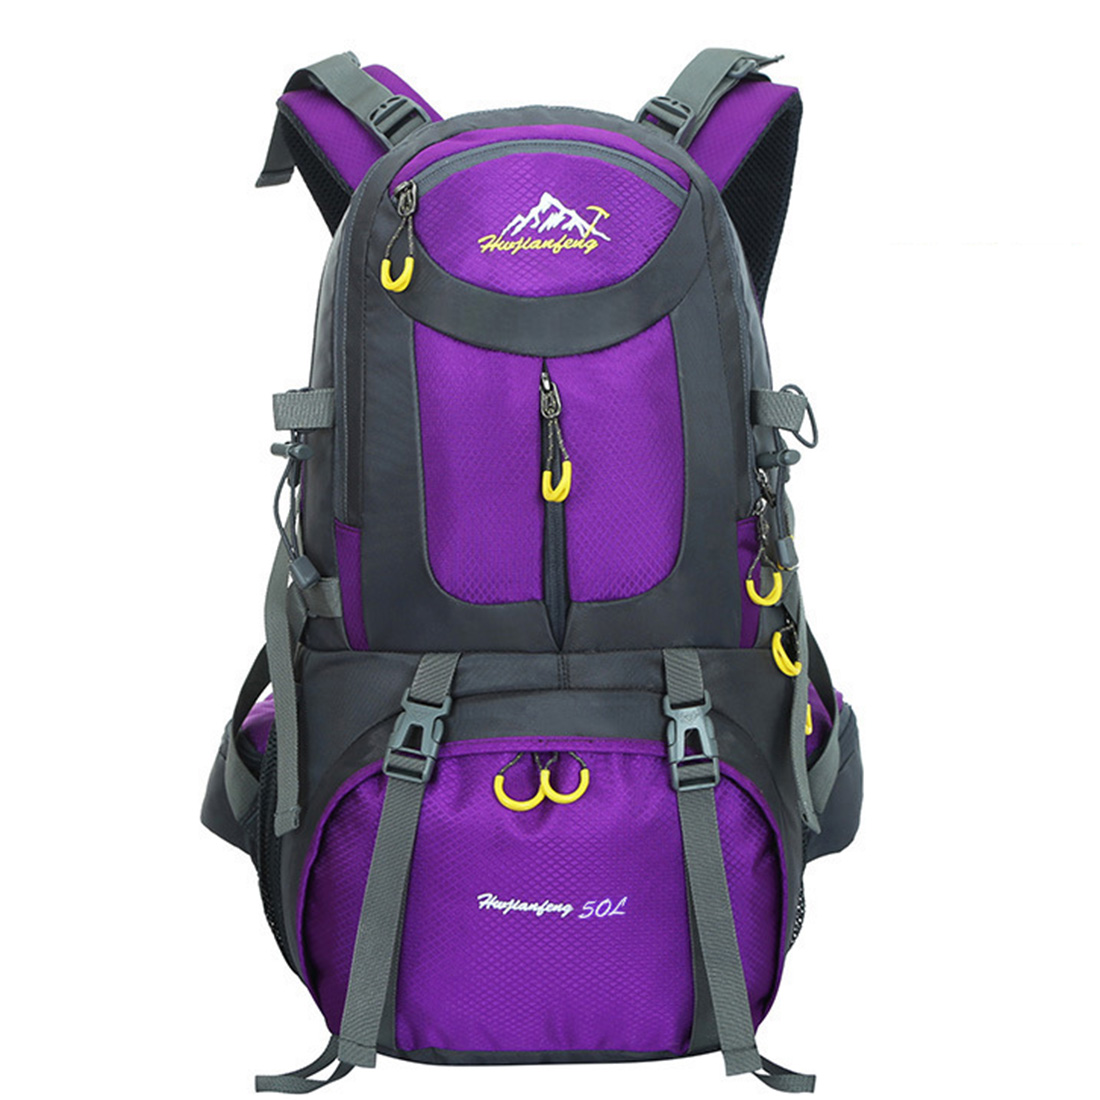 50L Nylon Fabric New Hiking Camping Climbing Backpack Super Waterproof Tearing Resistance Sport Backpack for Man Women<br><br>Aliexpress